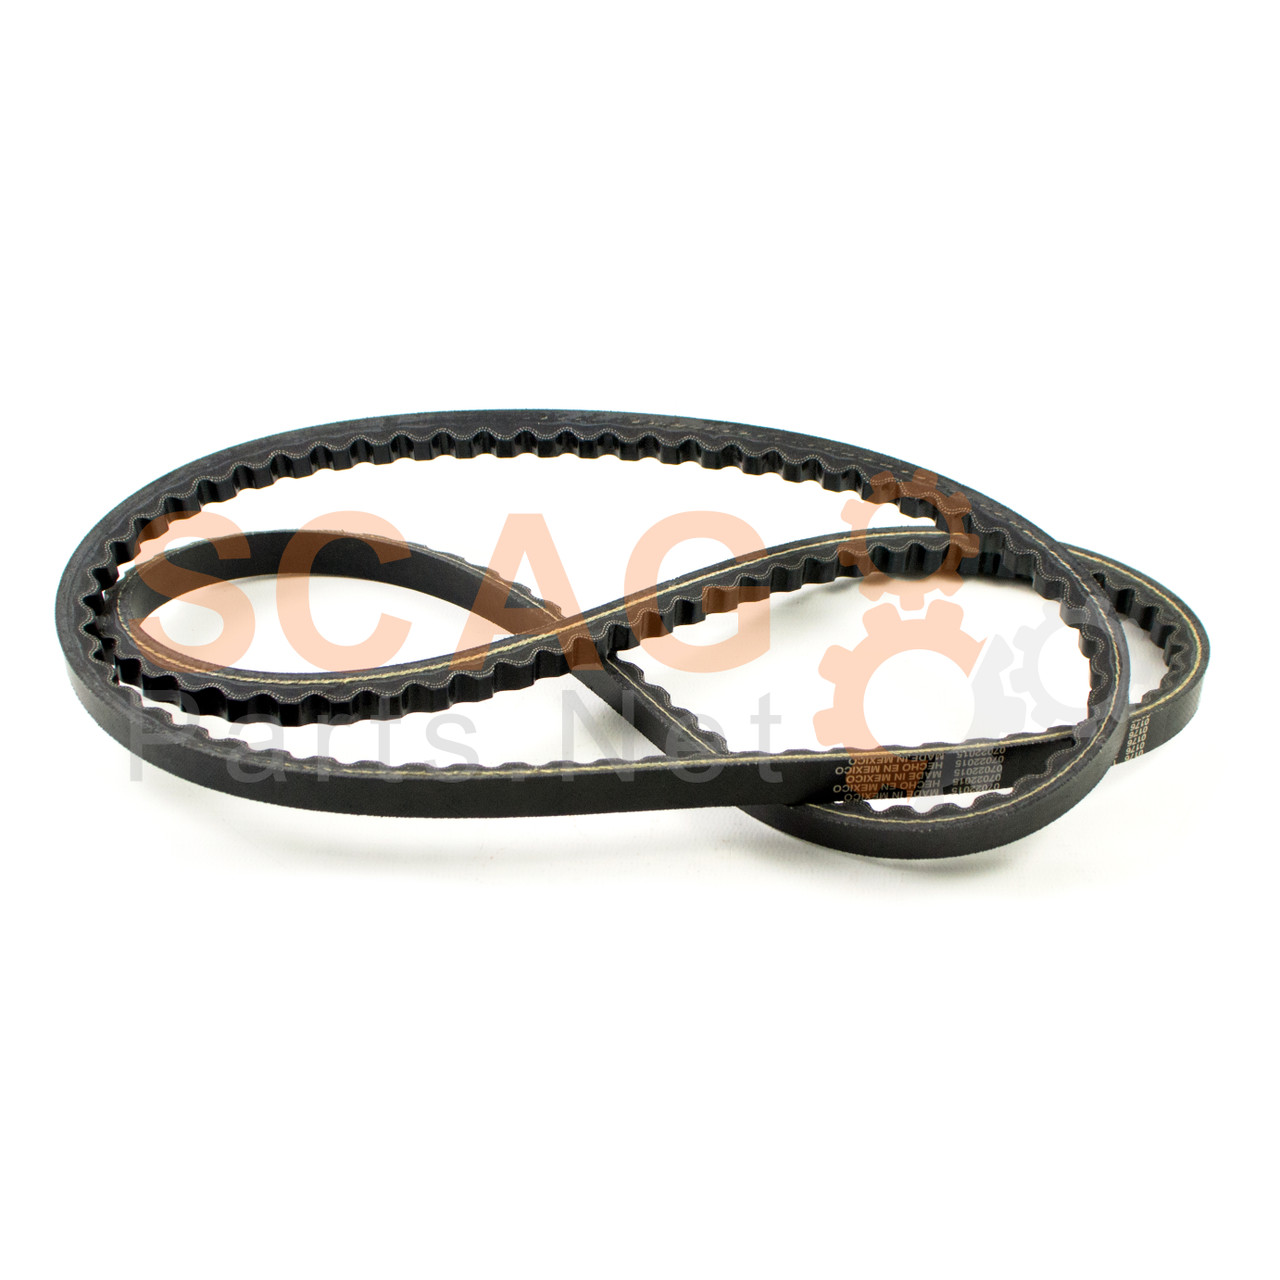 Scag 483164 SZC Pump Drive Belt